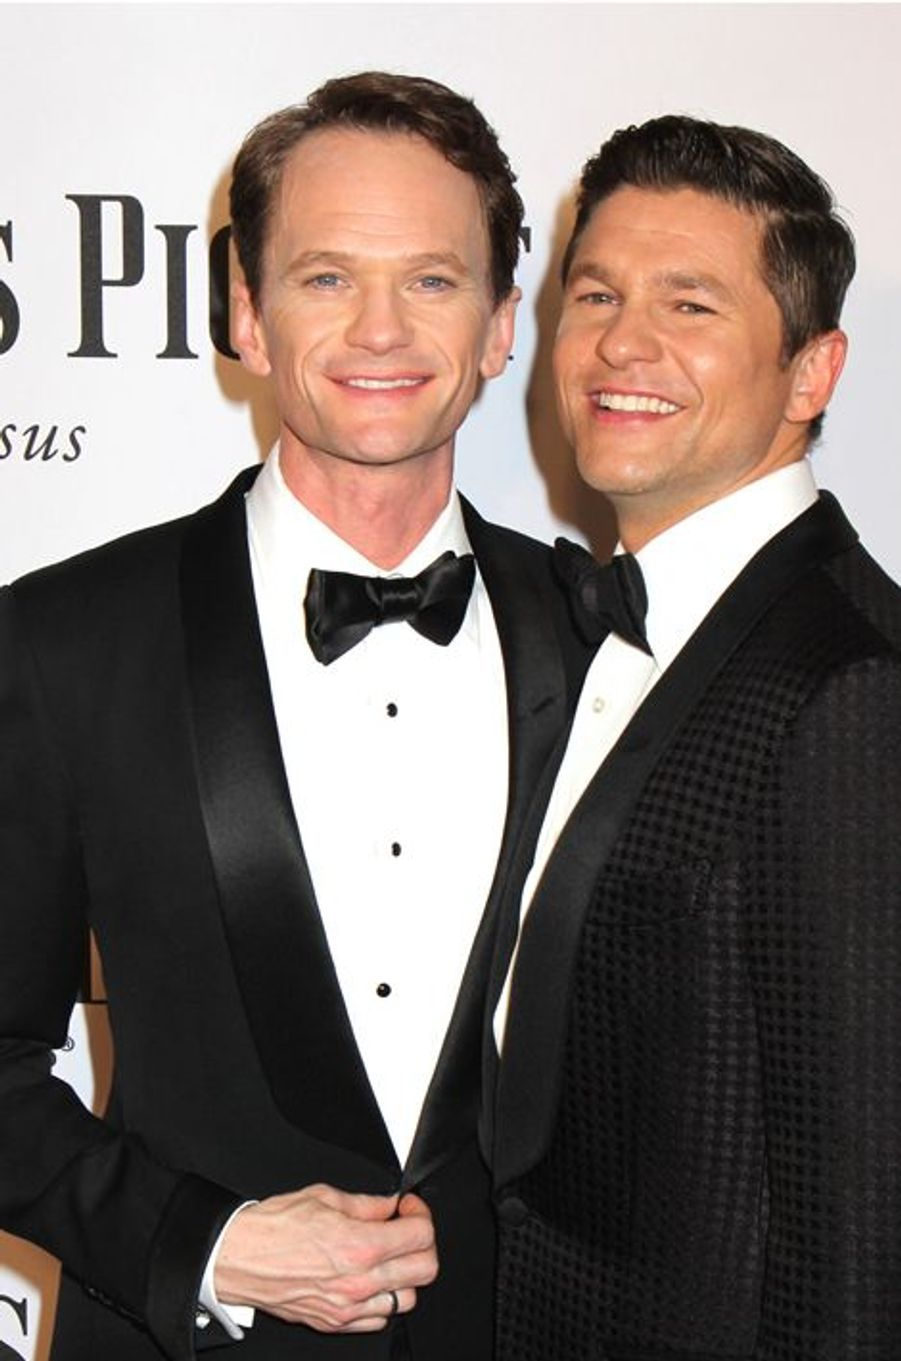 Neil Patrick Harris et David Burtka à New York, le 8 juin 2014.